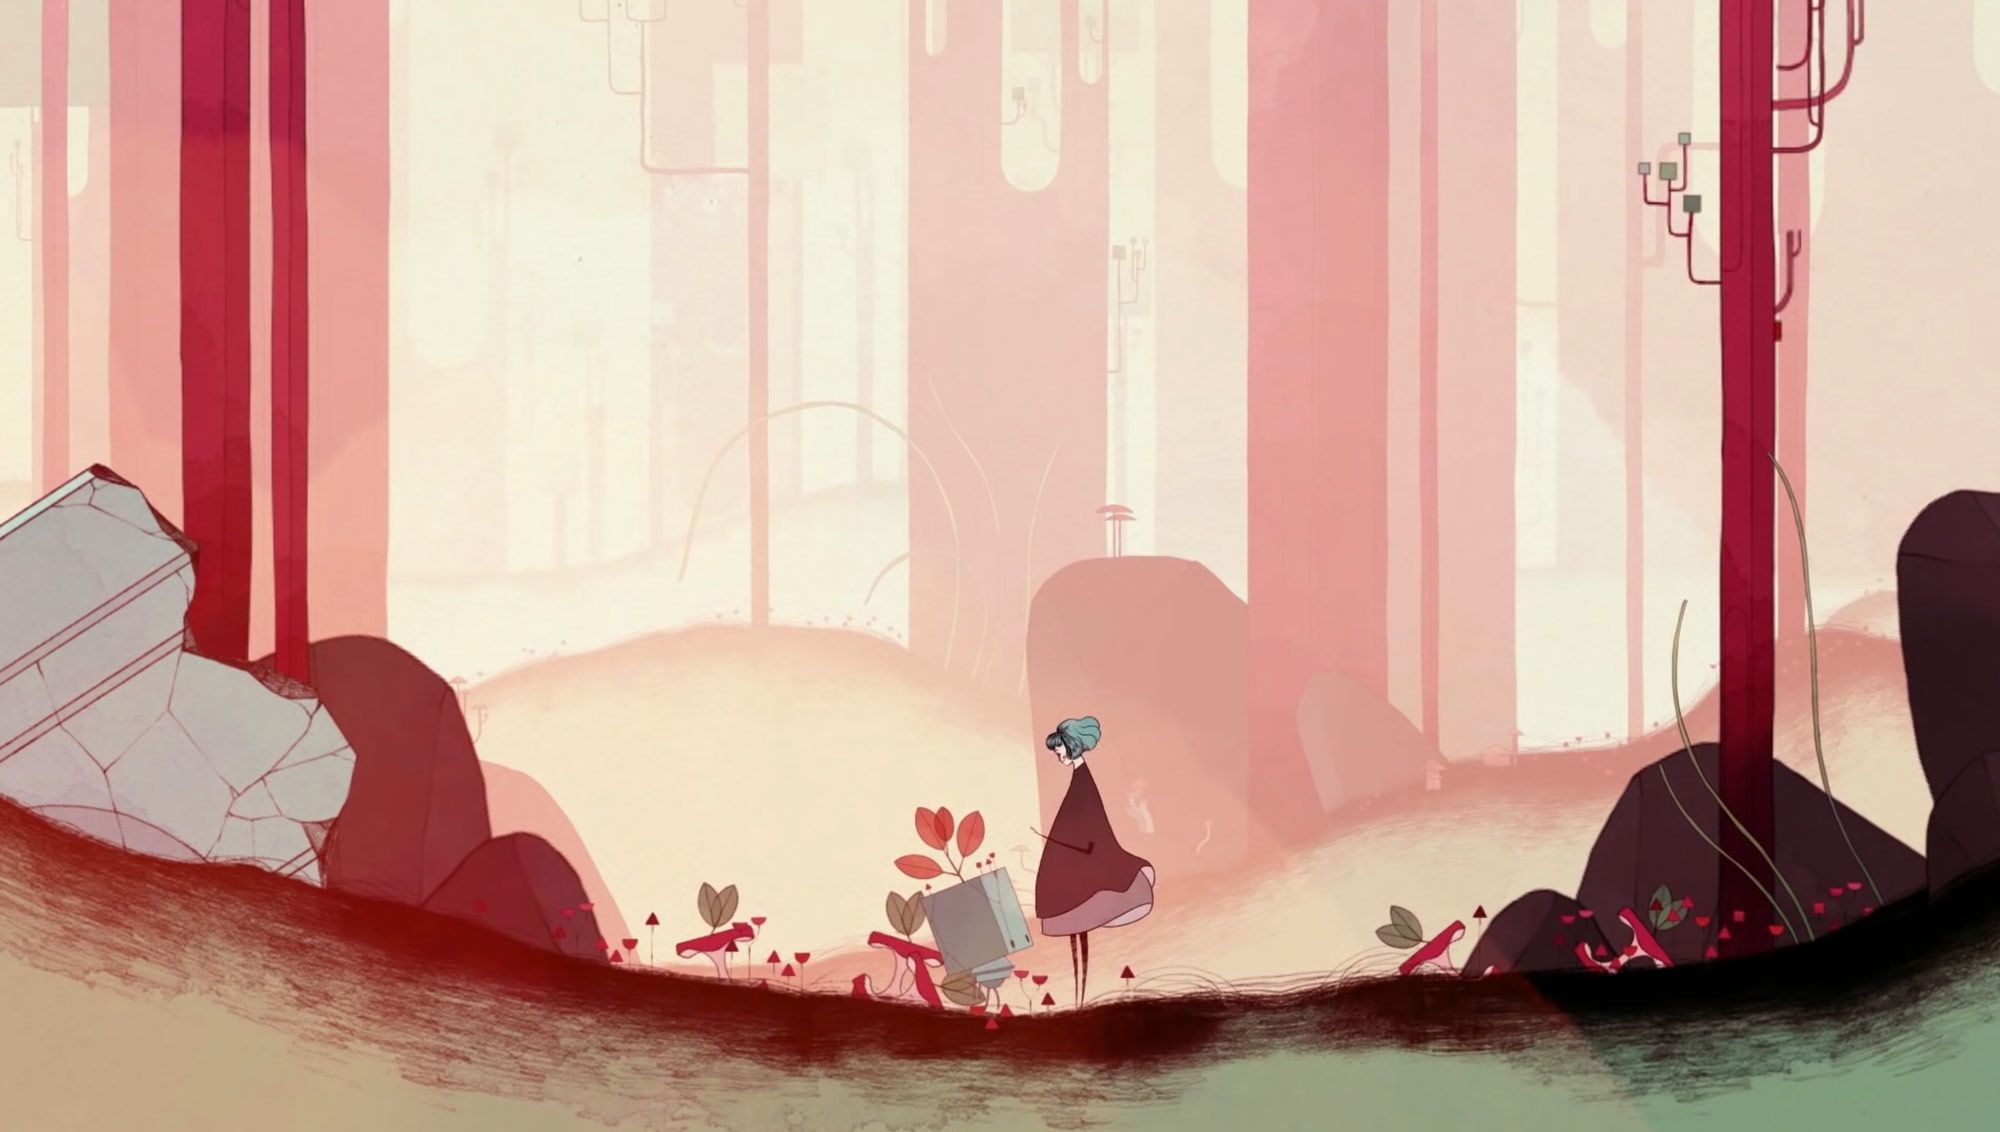 Gris Explore A Surreal Watercolor Landscape In A New Video Game By Nomada Studio Game Concept Art Watercolor Landscape Colossal Art